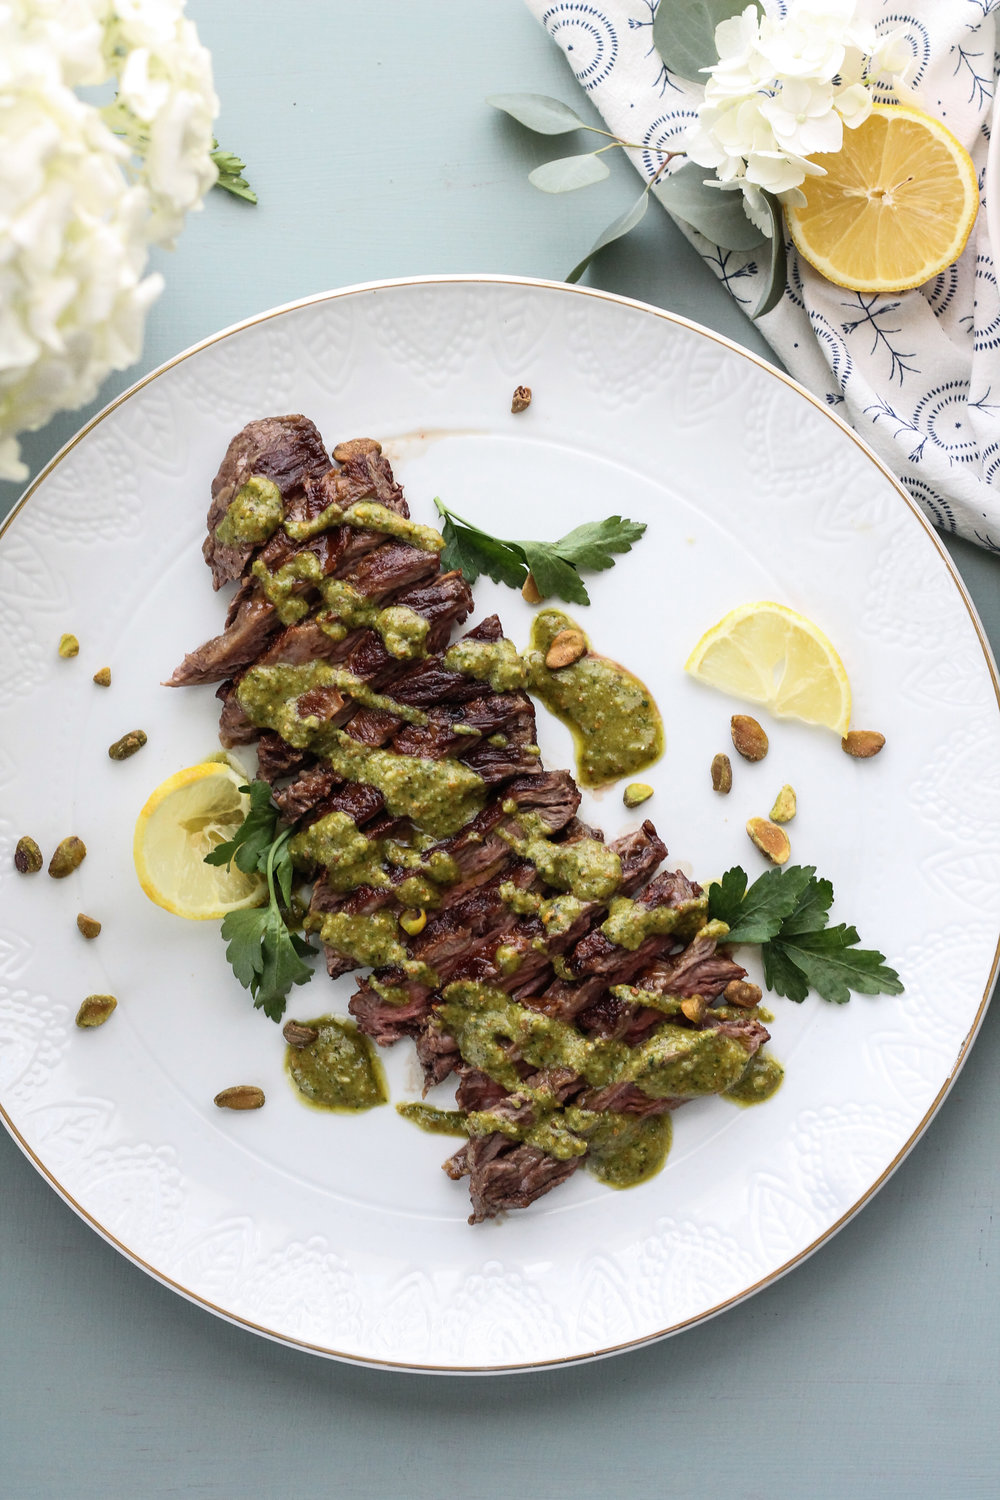 SKIRT+STEAK+WITH+LEMON+PISTACHIO+GREMOLATA+[+www.pedanticfoodie.jpg